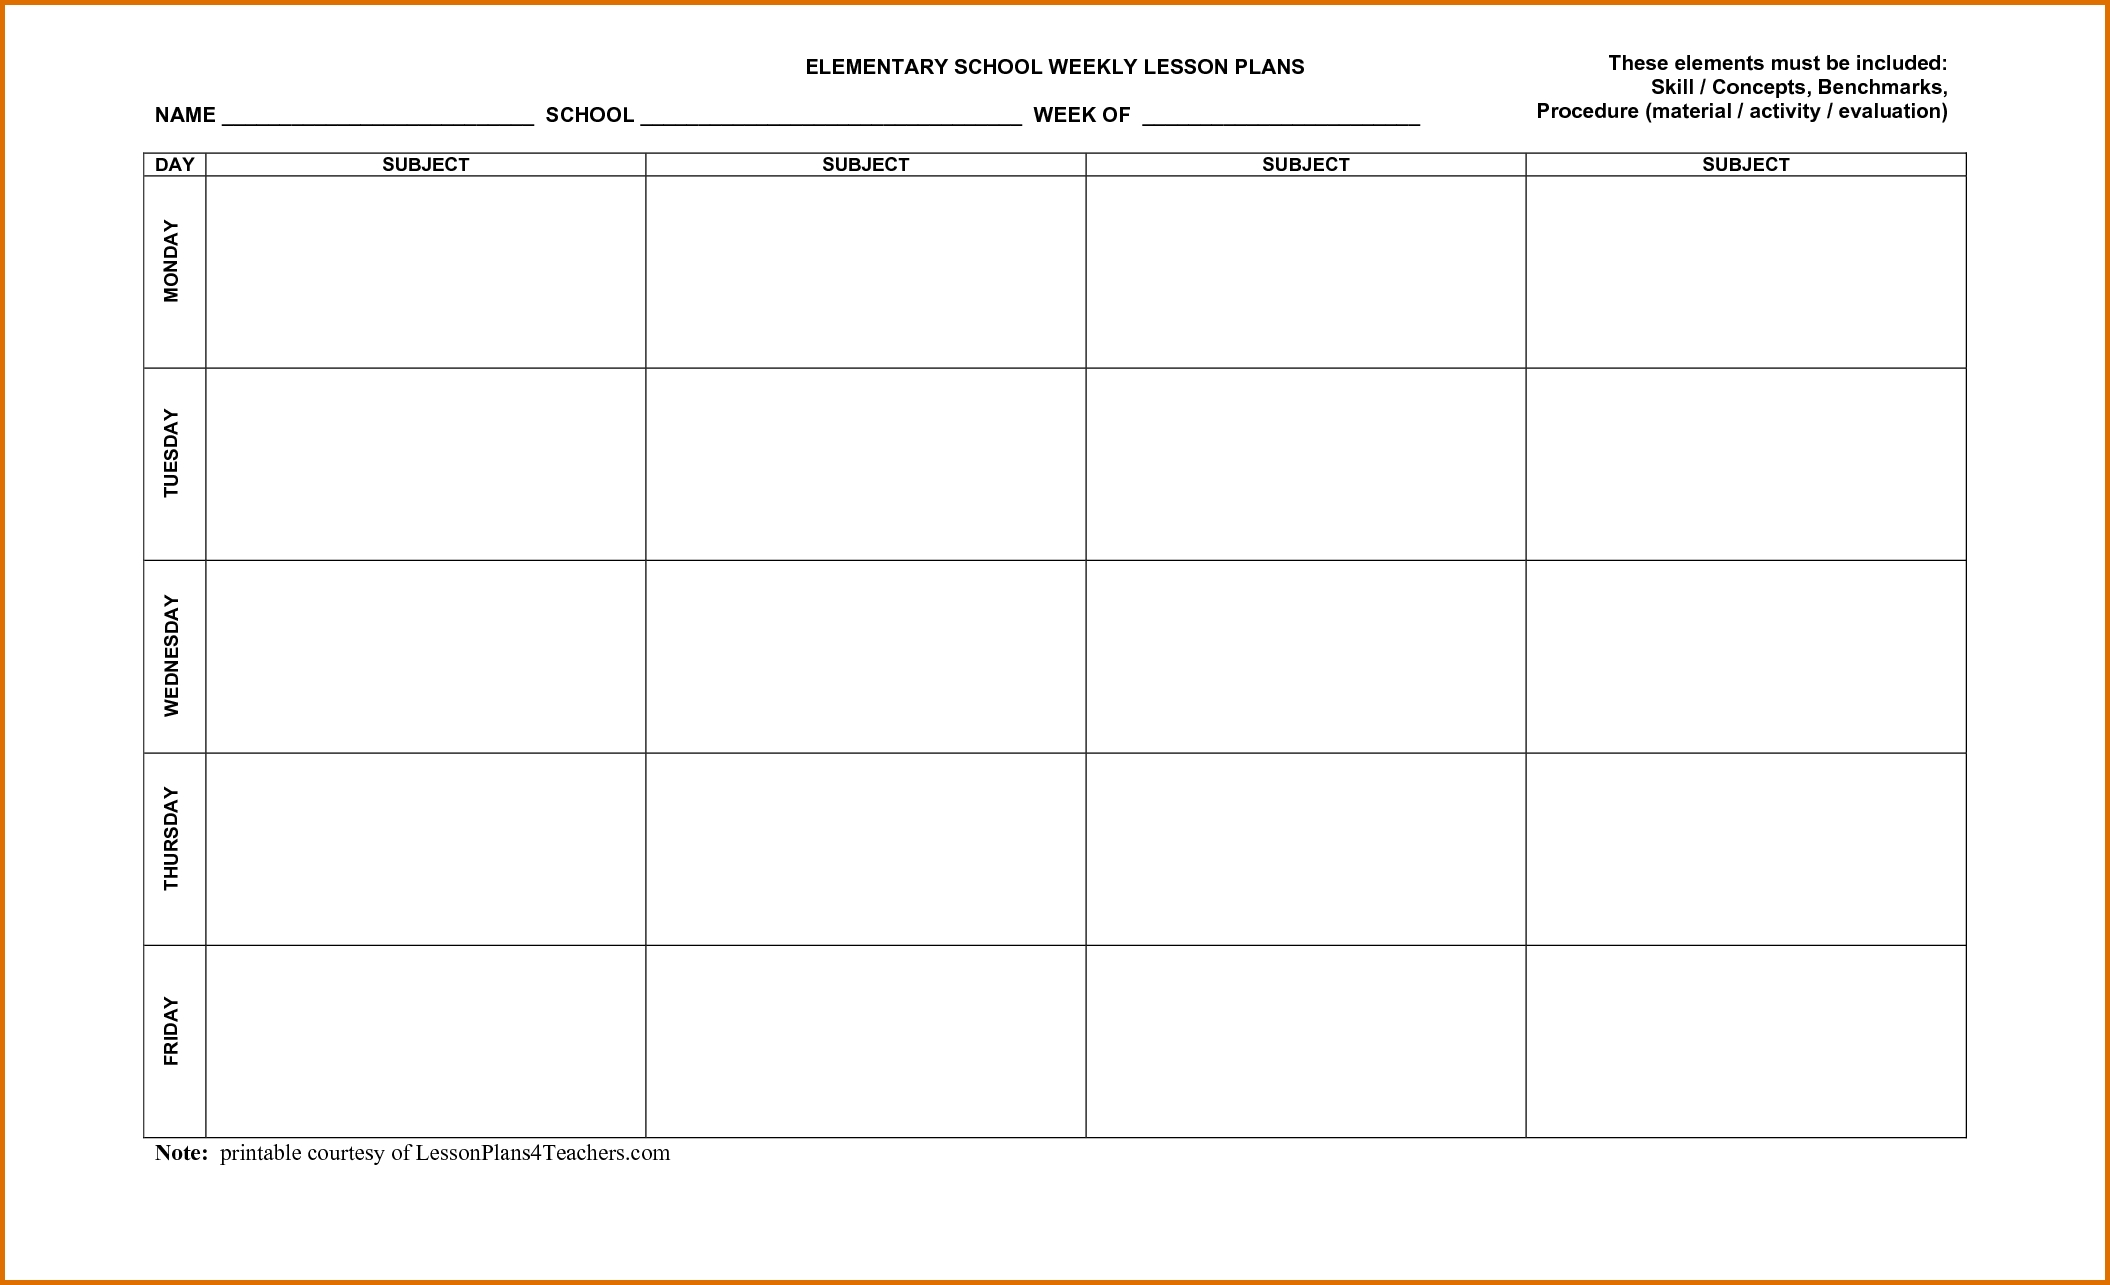 Templates For Curriculum Planning - Google Search | Lesson